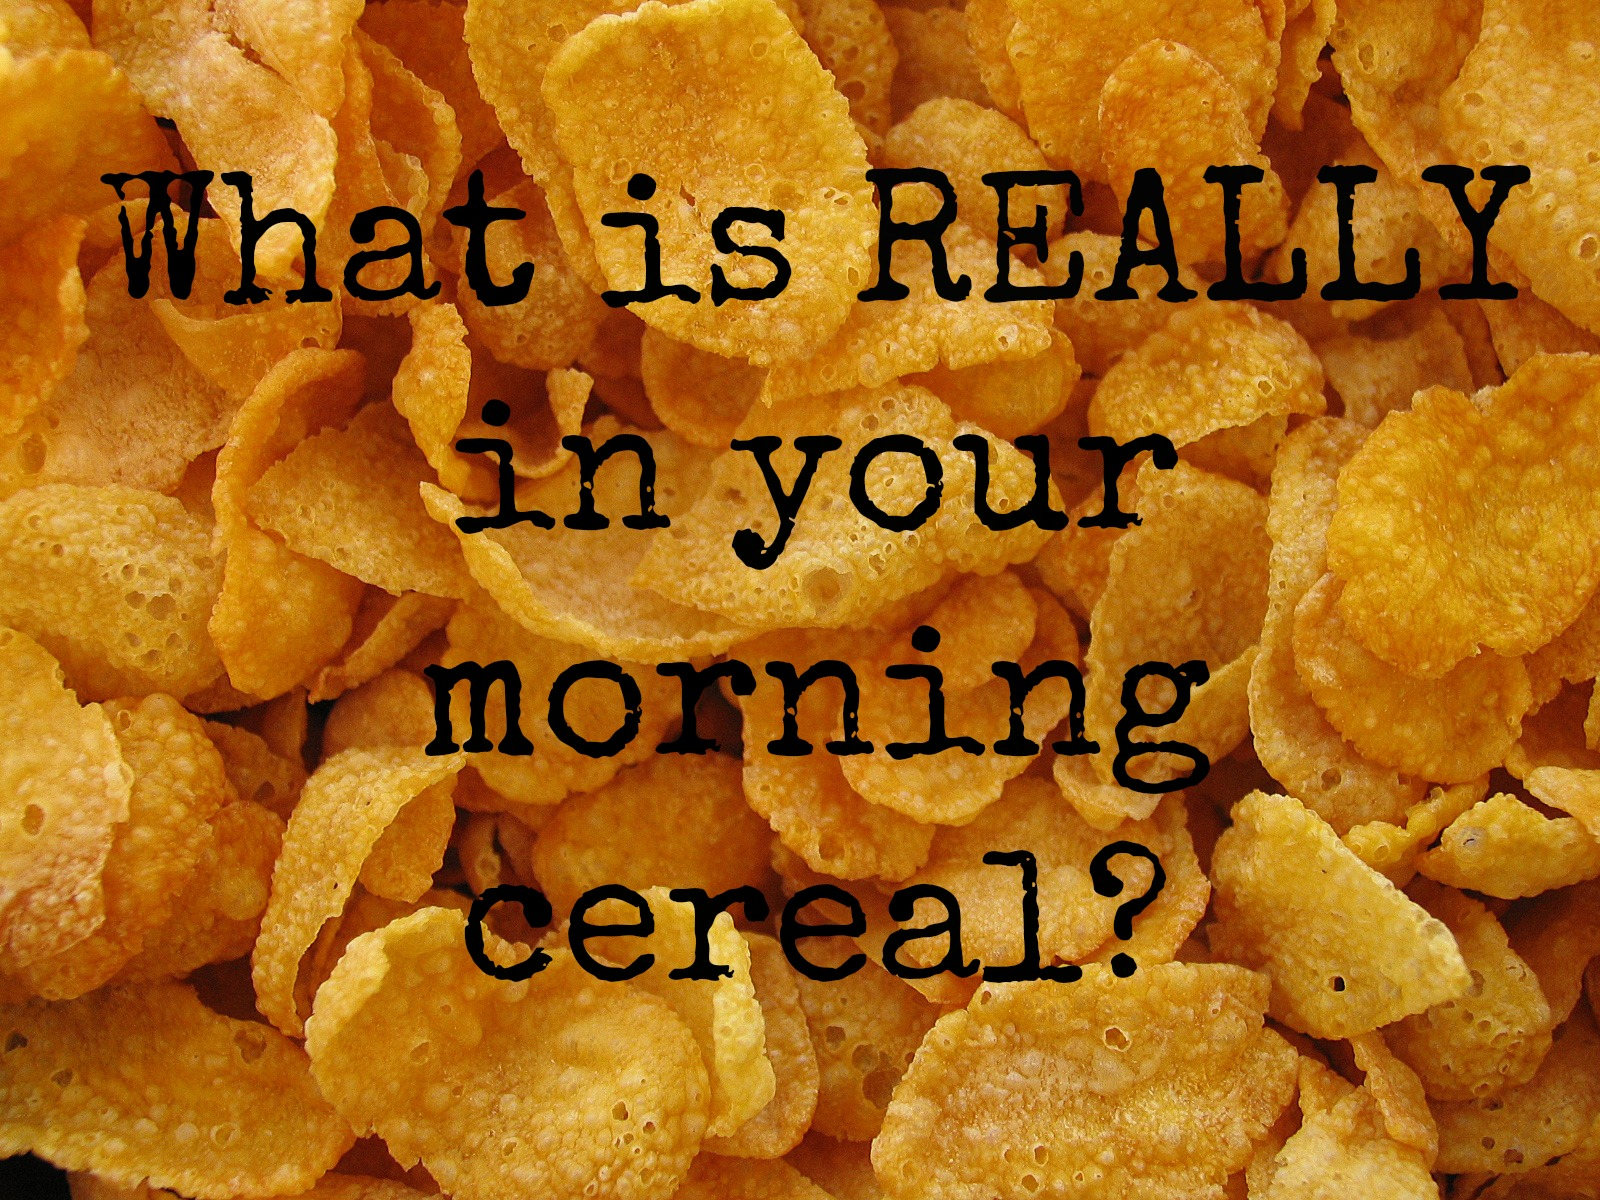 What is really in my cereal?